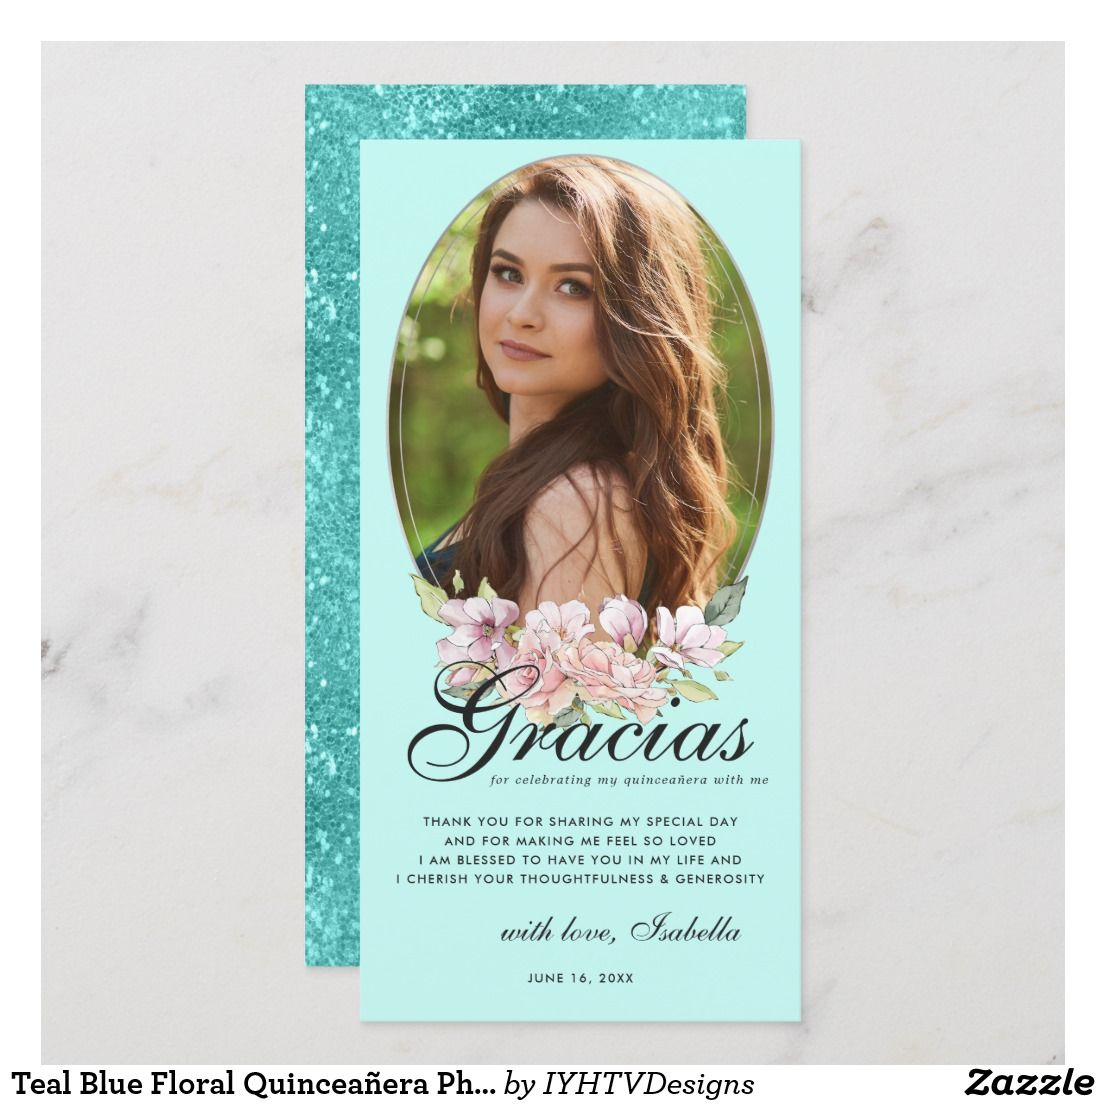 Teal Blue Floral Quinceañera Photo Thank You Card